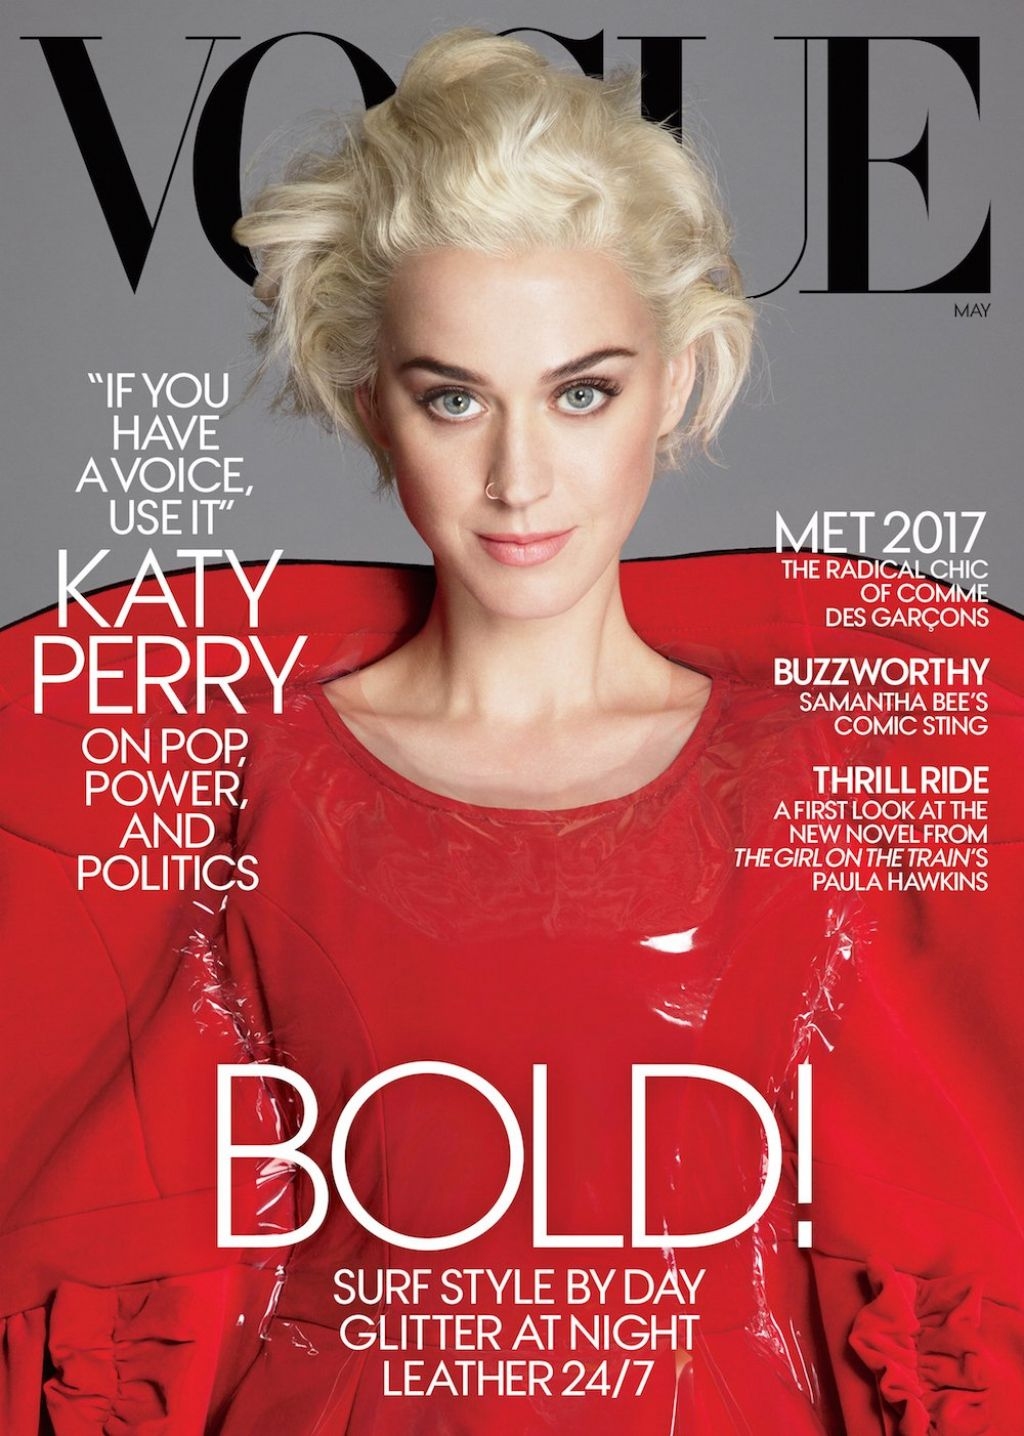 katy perry vogue magazine may 2017